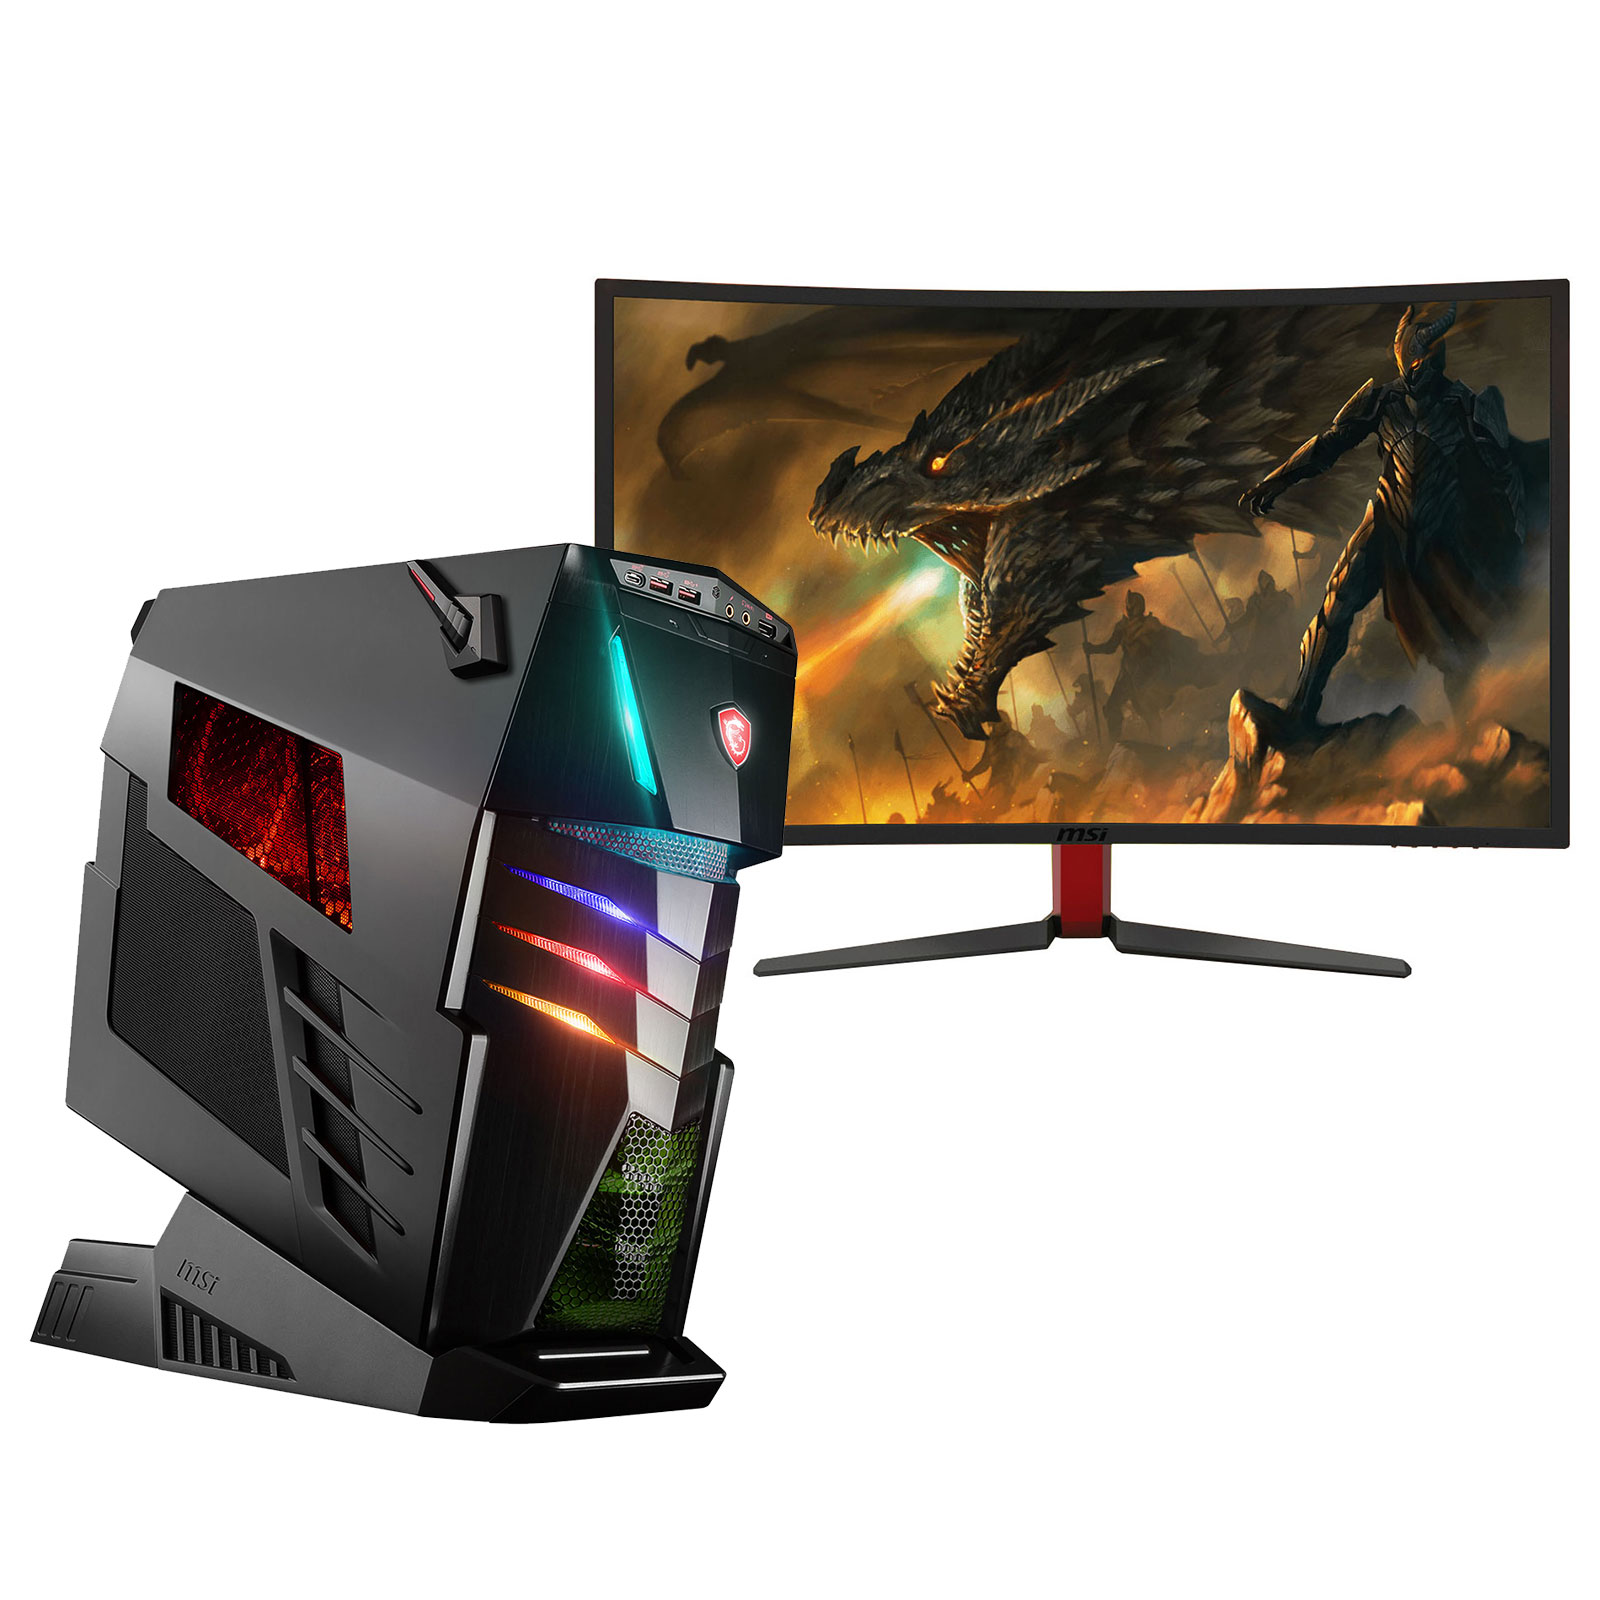 msi aegis ti3 vr7rd sli 011eu ecran msi optix g27c offert pc de bureau msi sur ldlc. Black Bedroom Furniture Sets. Home Design Ideas